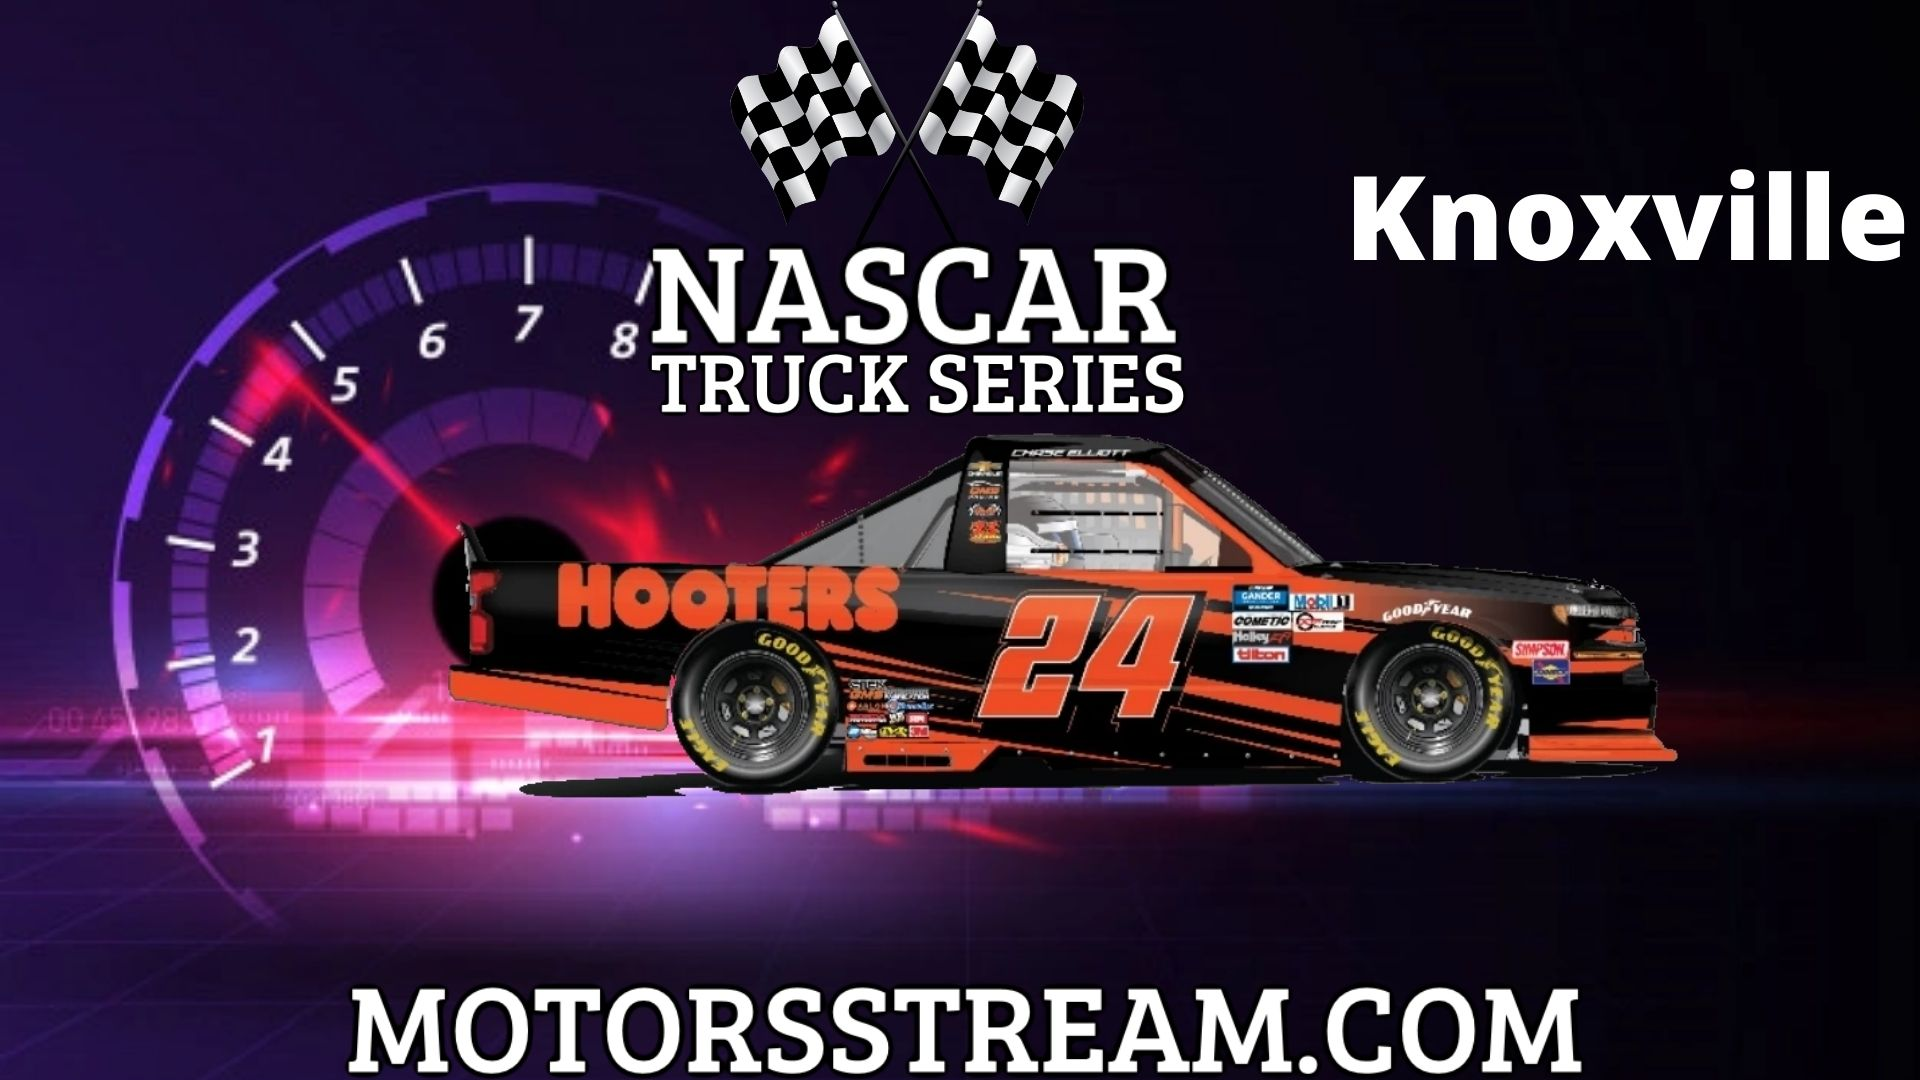 NASCAR Truck Series Race At Knoxville Live Stream   Knoxville 2021